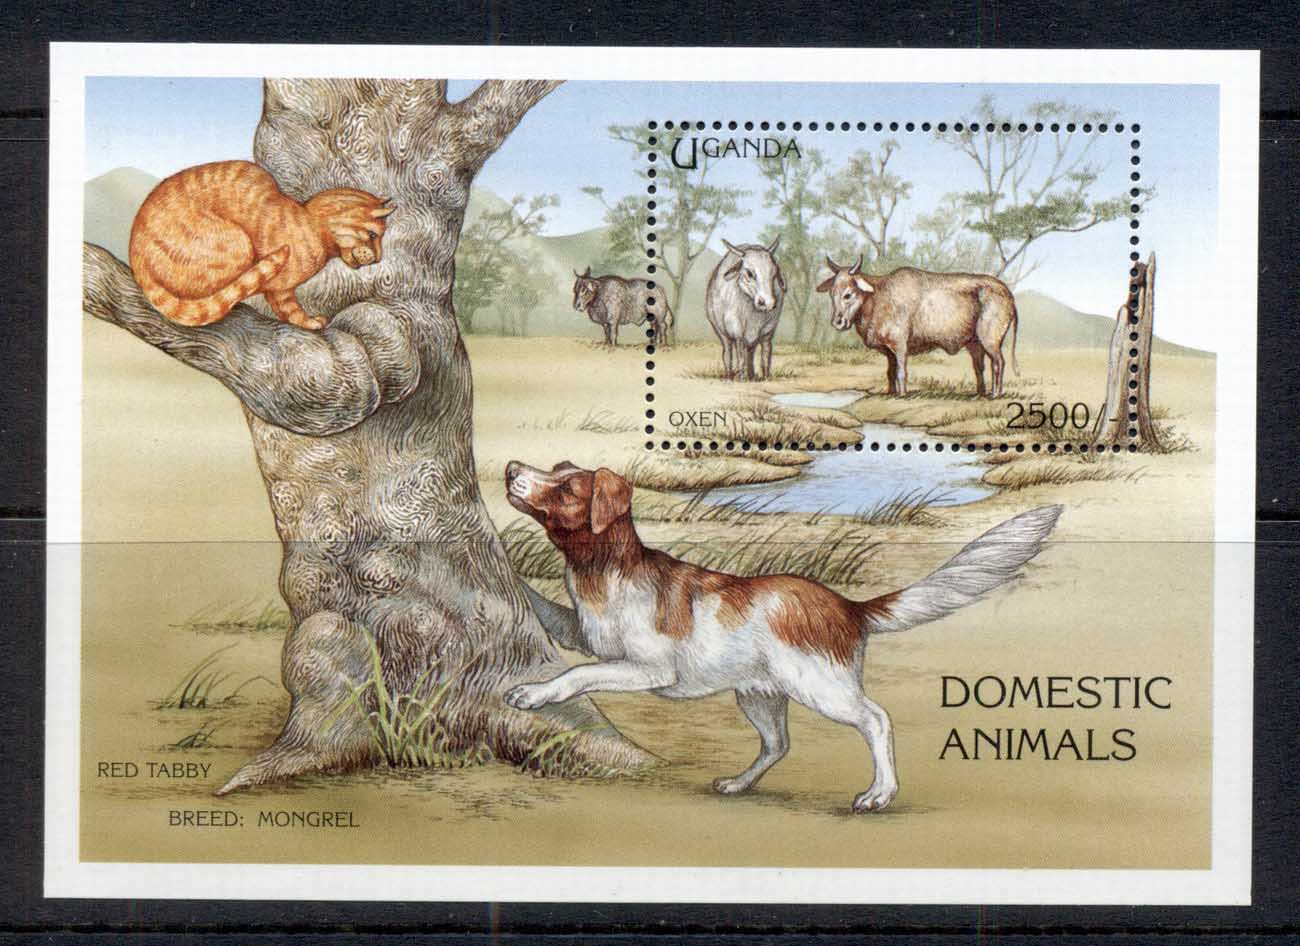 Uganda 1995 Domestic Animals, Cats & Dogs, Oxen MS MUH